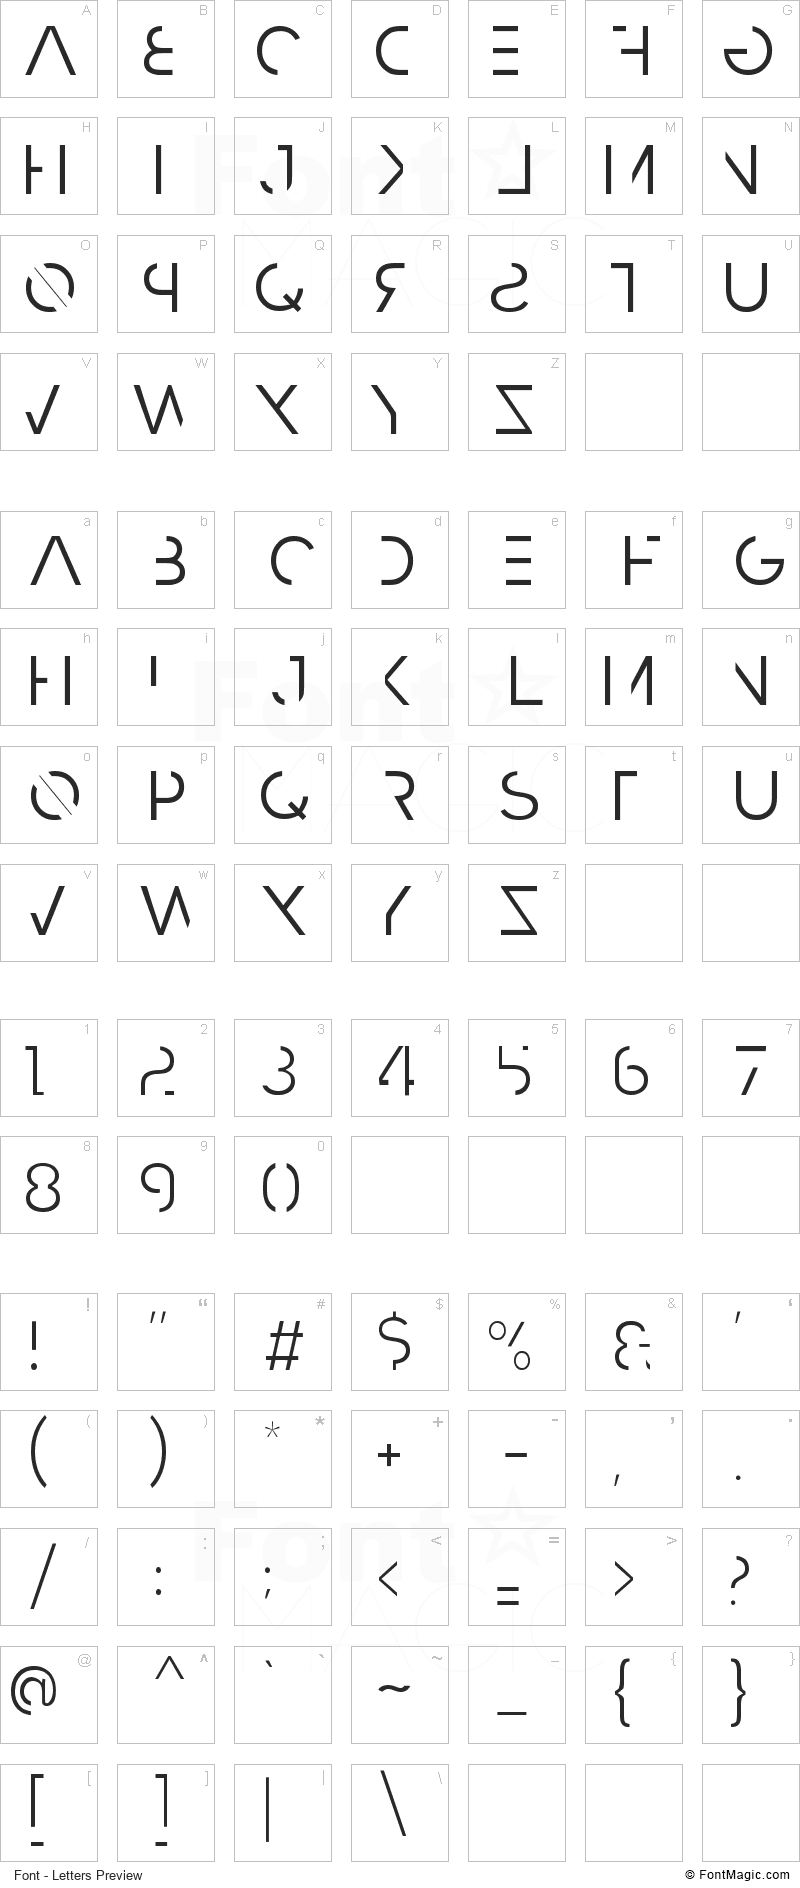 Razed Font - All Latters Preview Chart